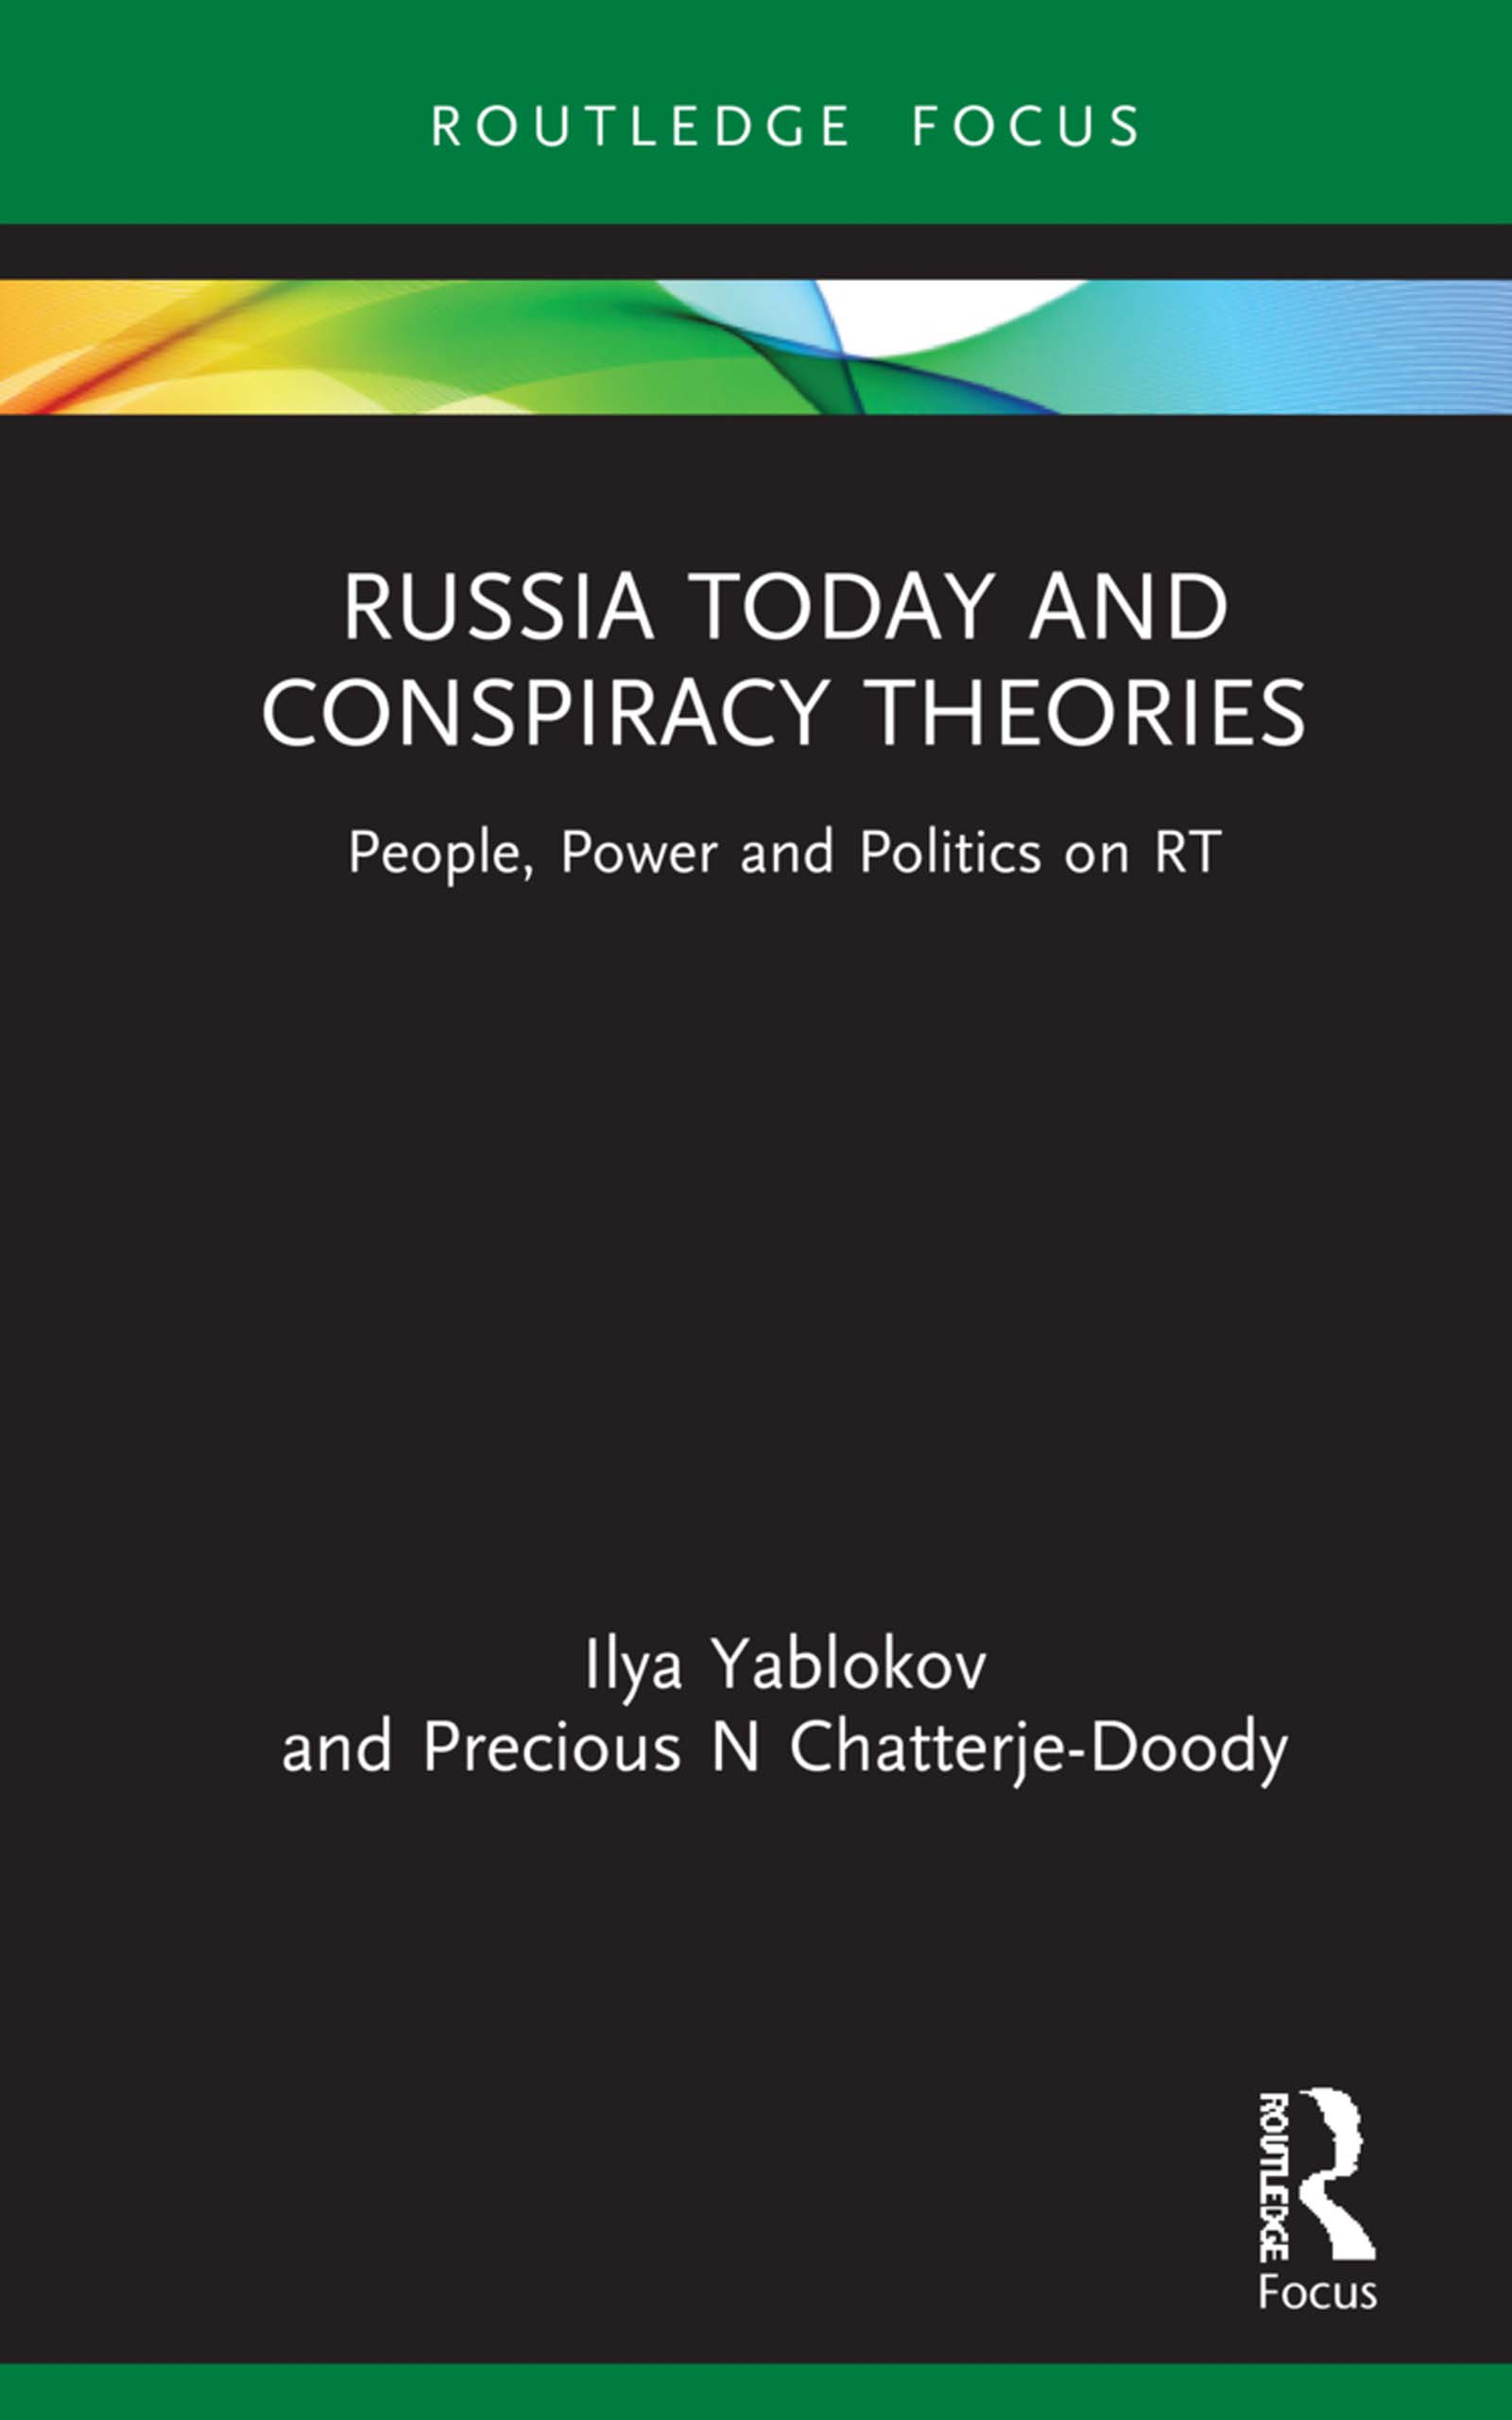 Russia Today and Conspiracy Theories